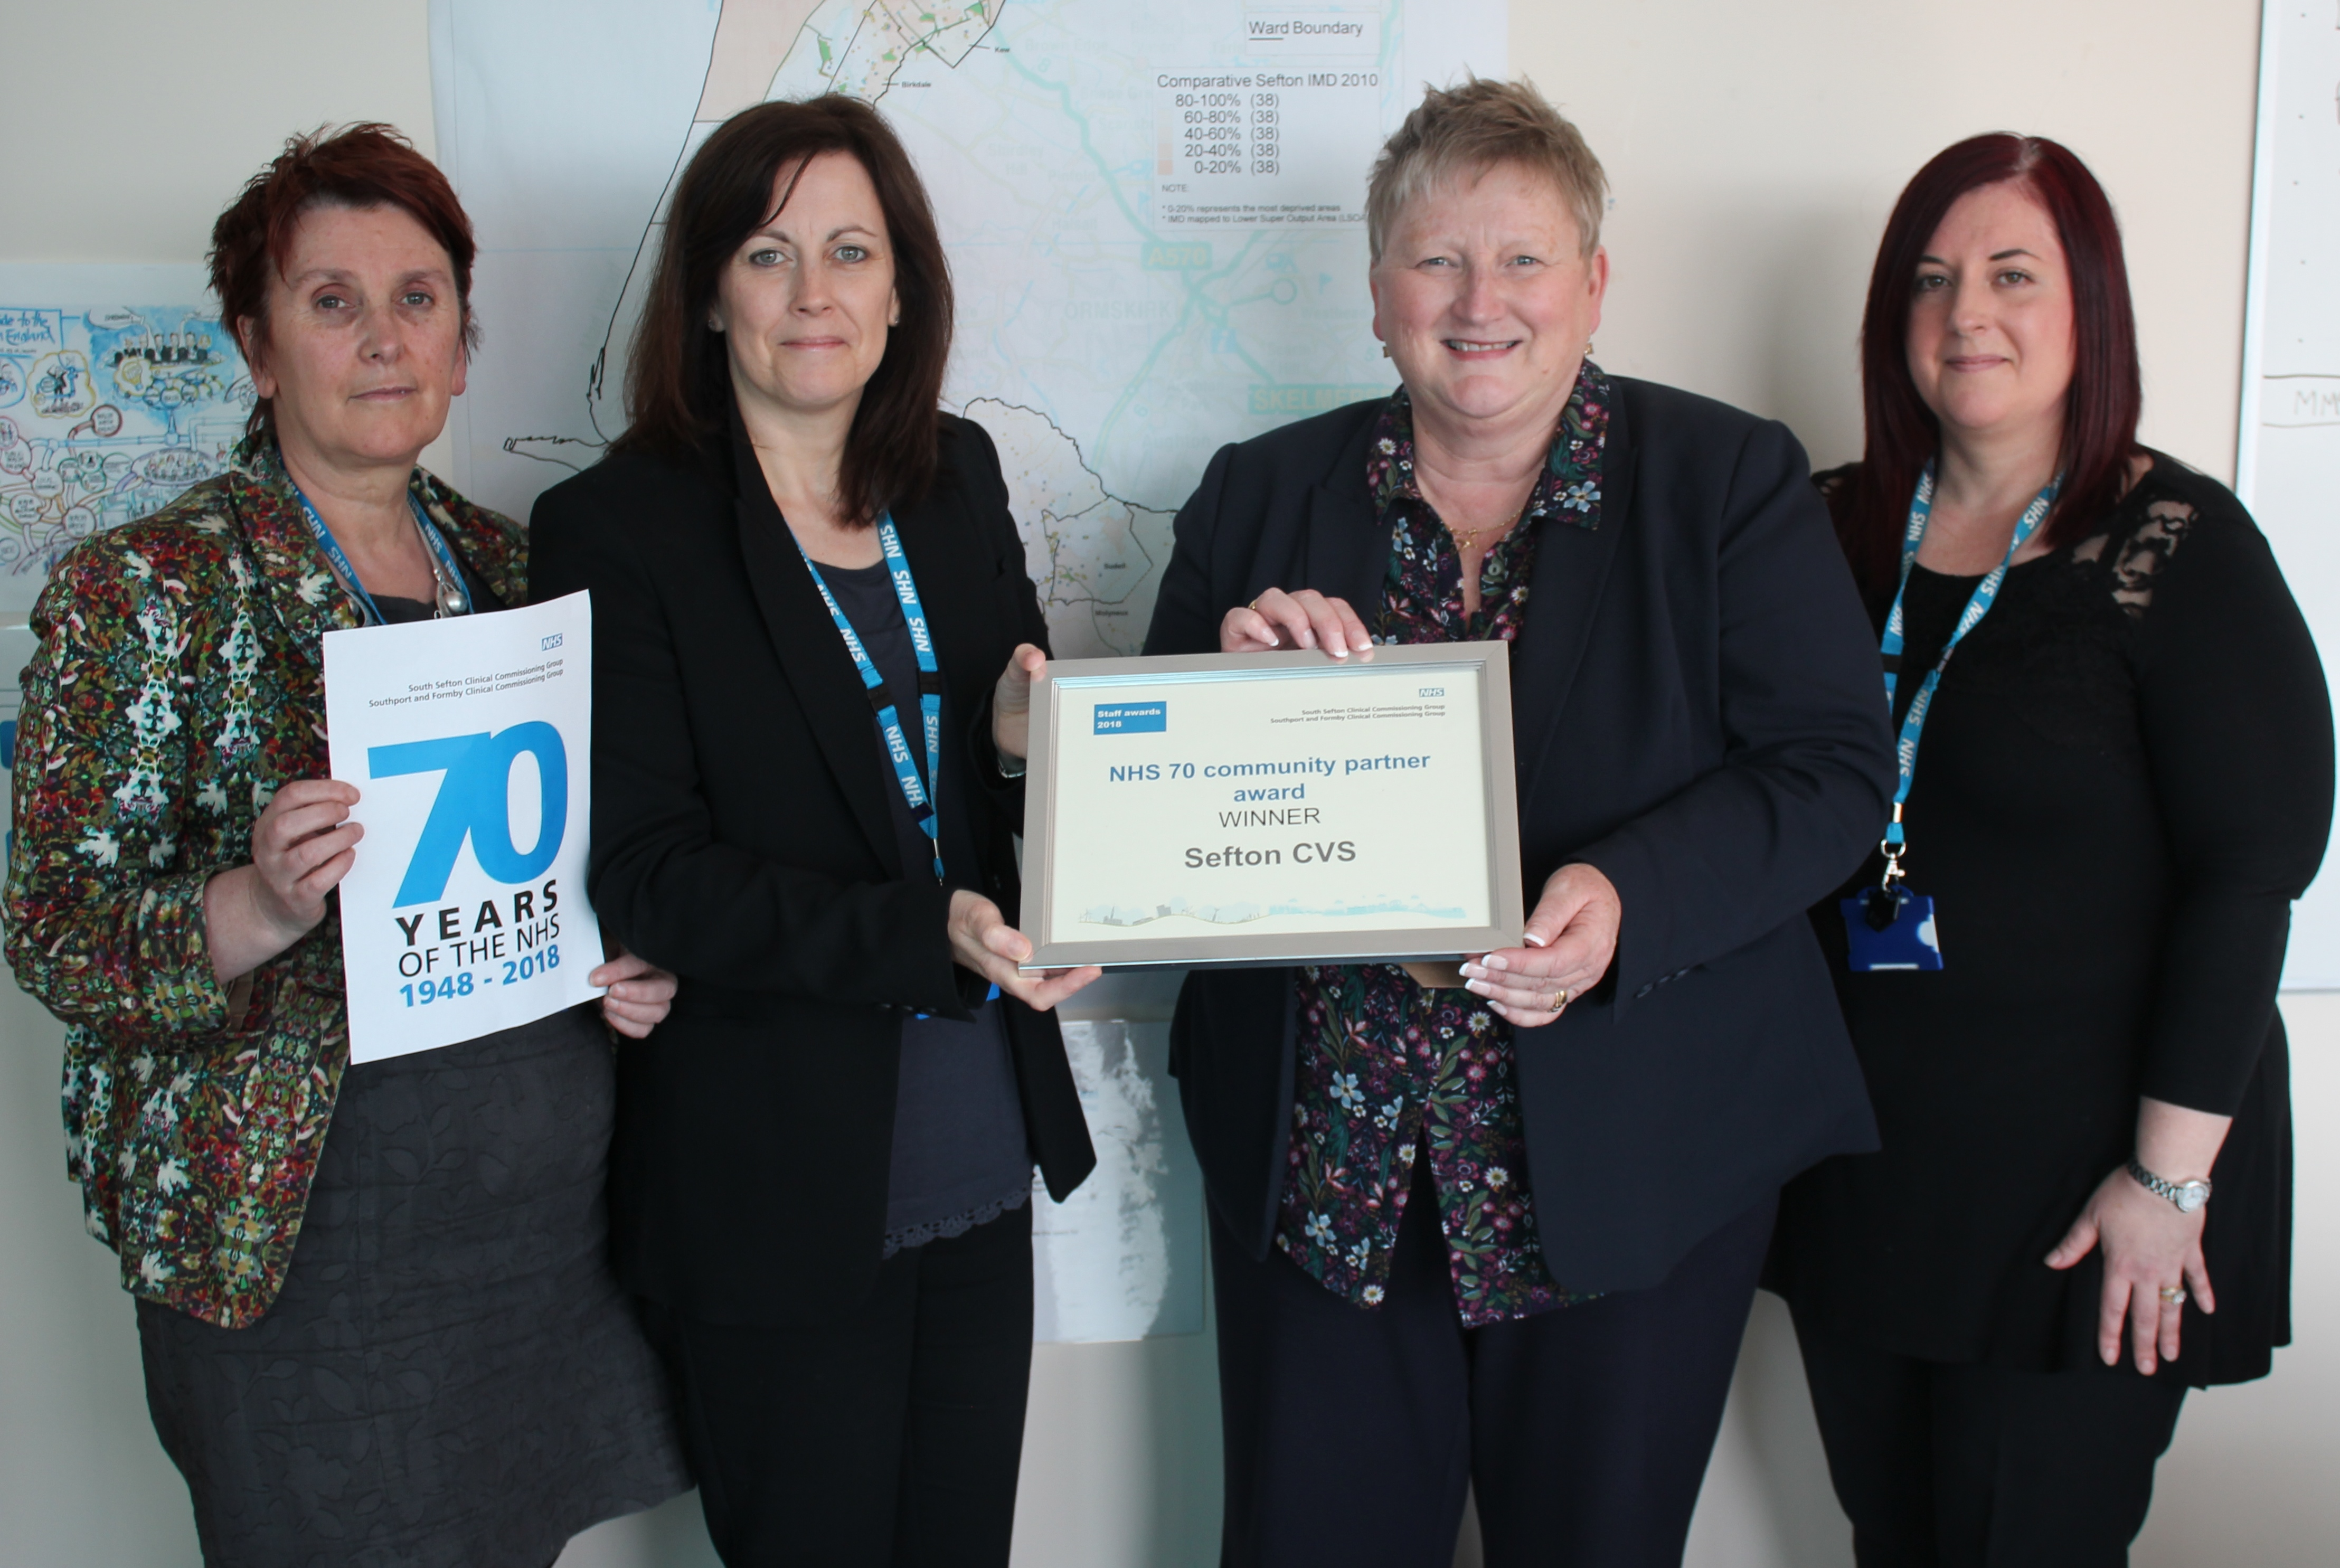 sefton cvs recognised for contribution to the nhs skem news